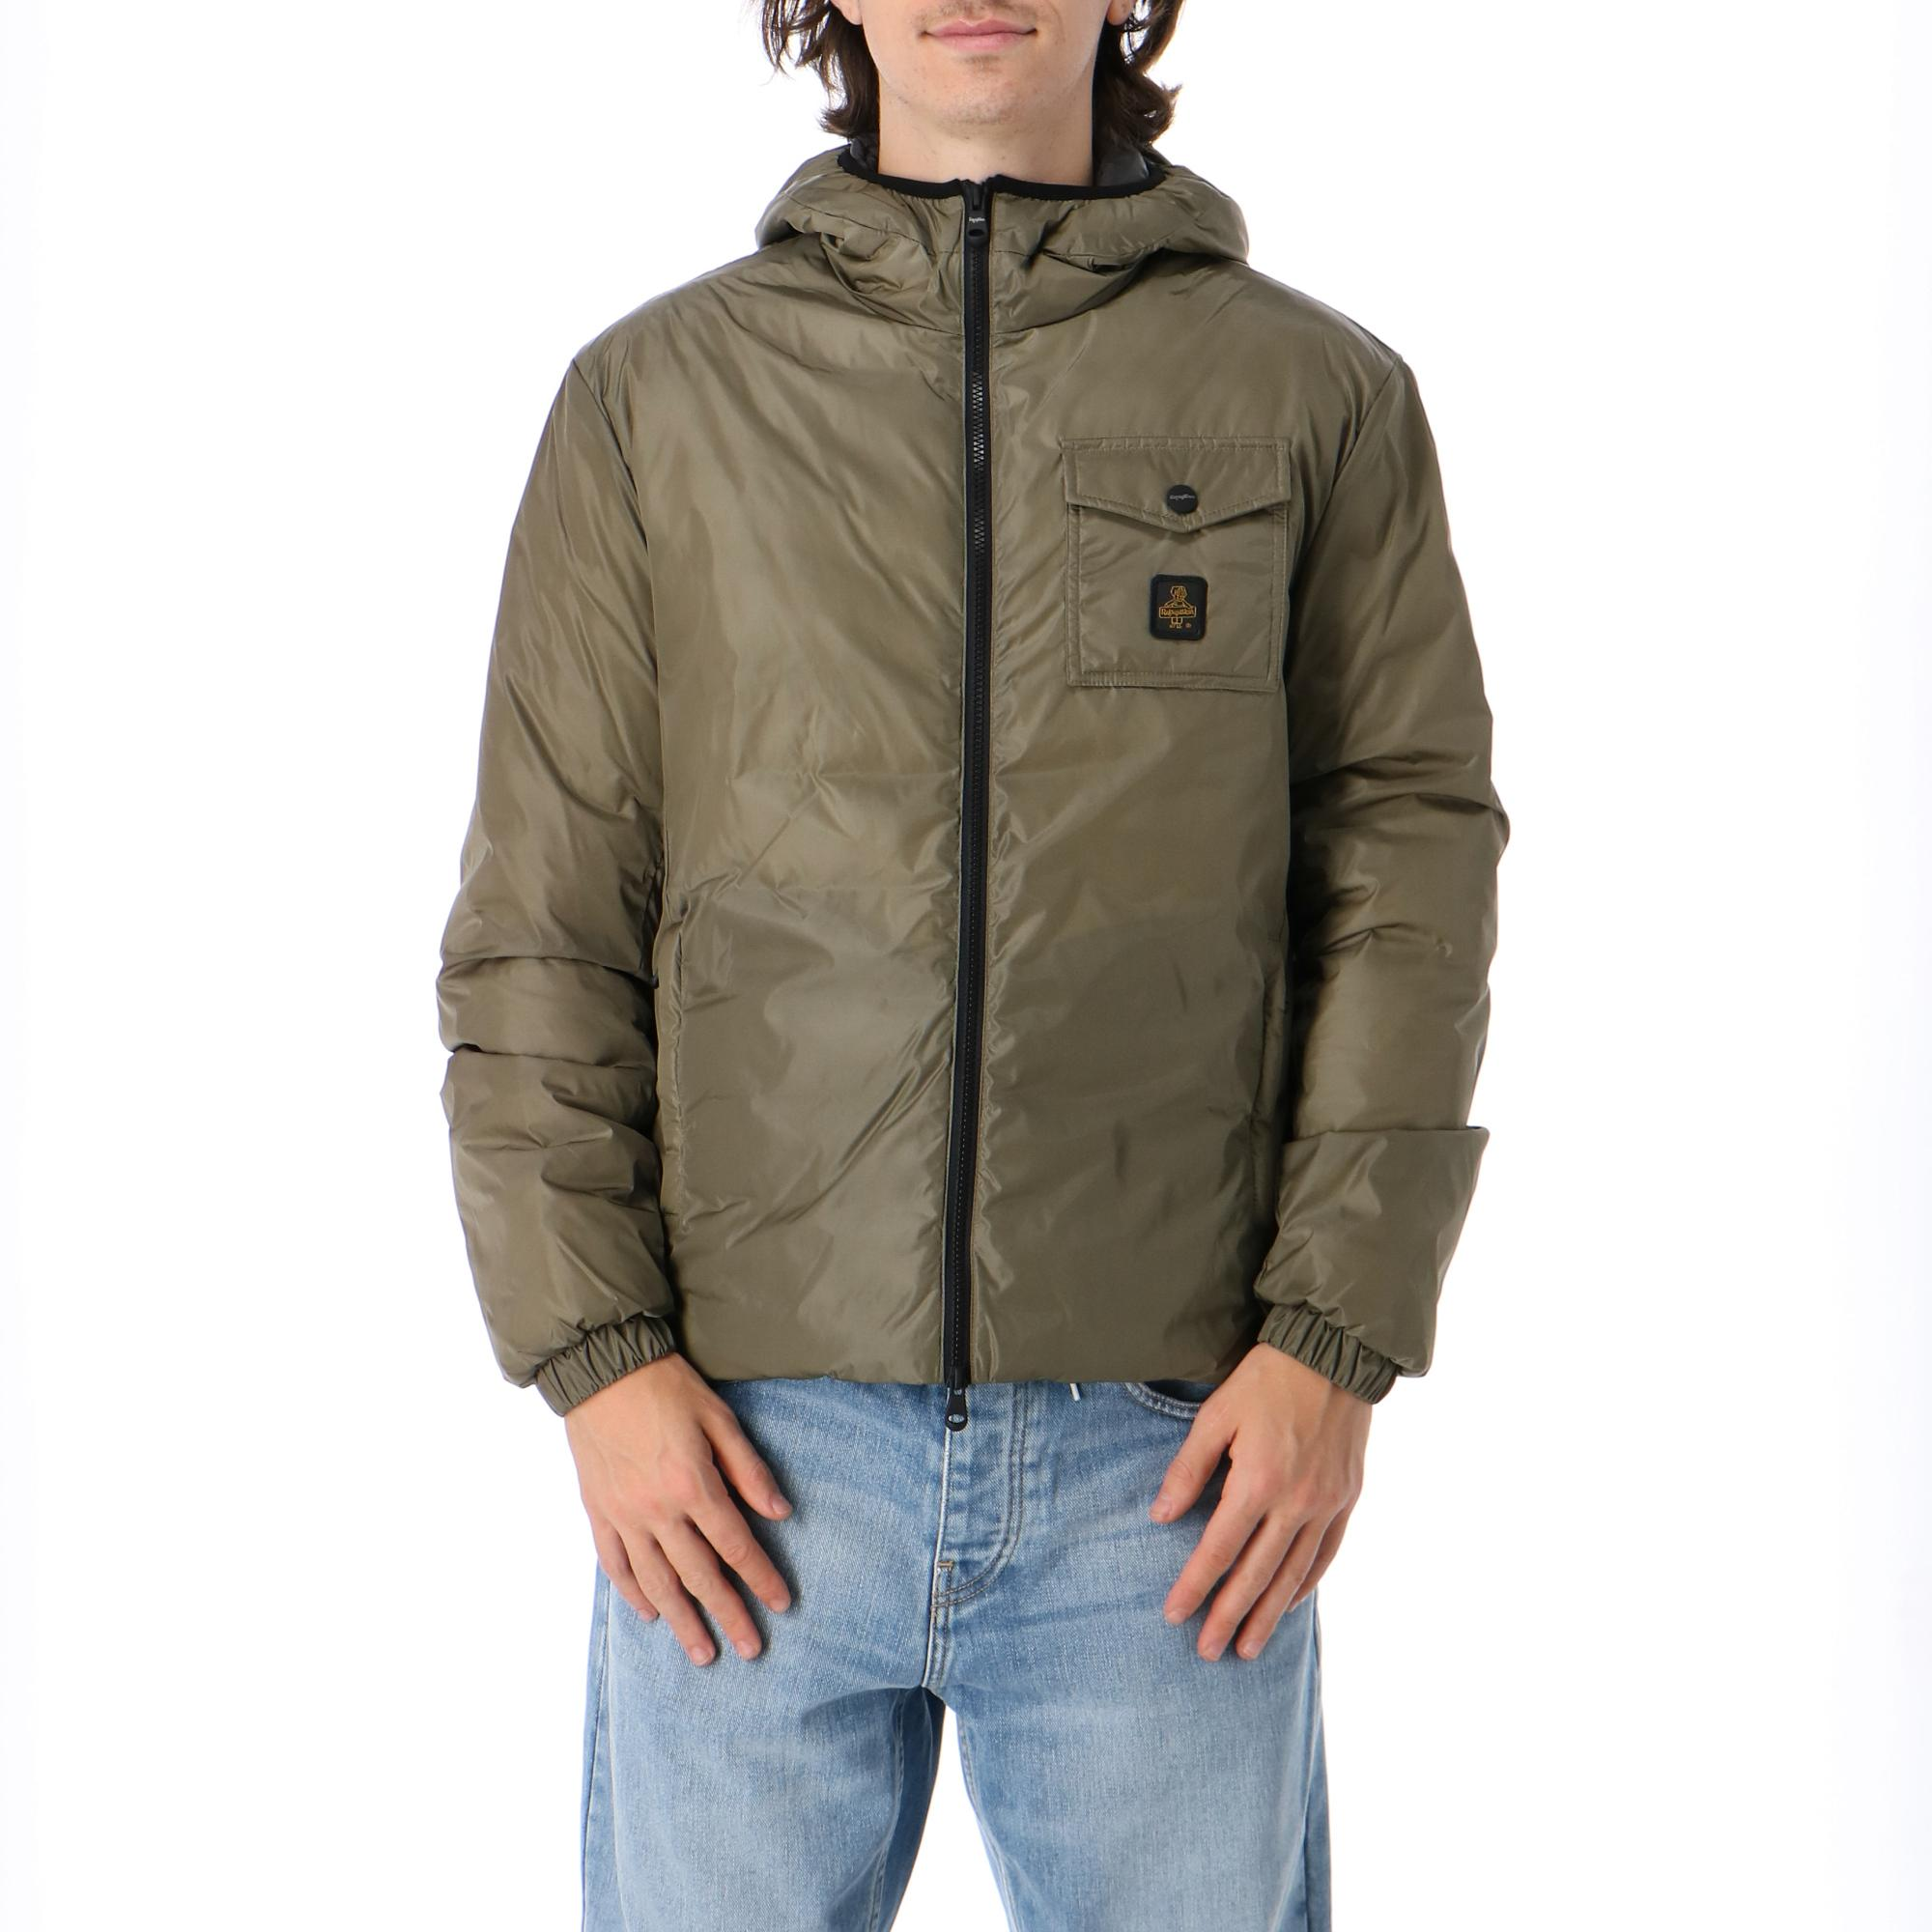 Refrigiwear Hudson 3 Jacket Chocolate chip